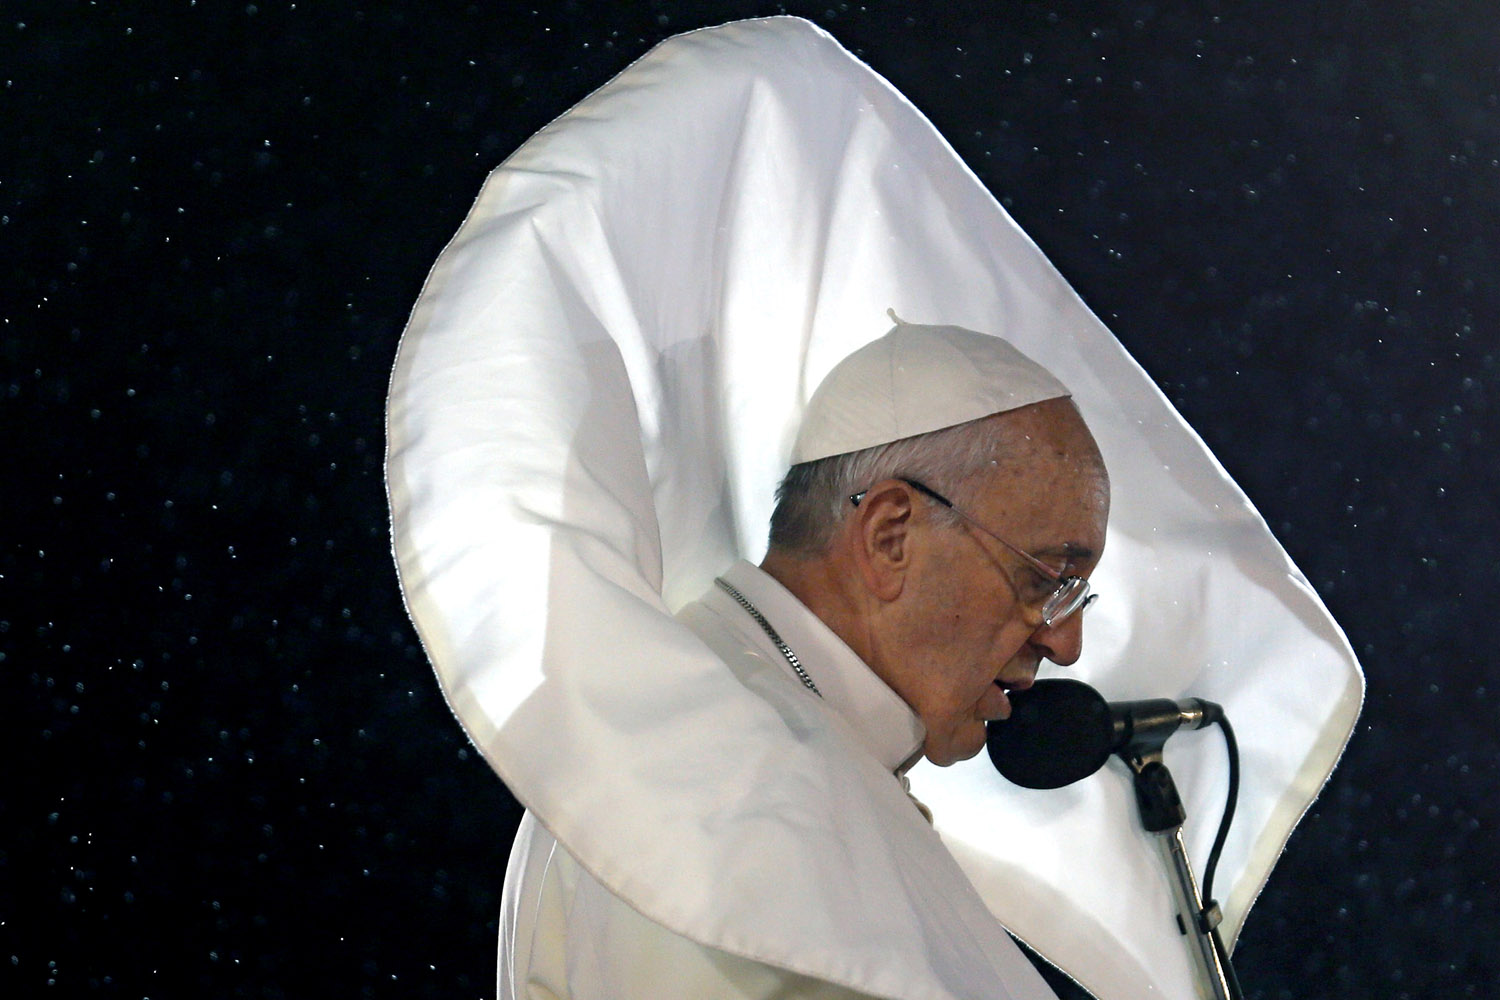 Pope Francis addresses a World Youth Day crowd on Rio de Janeiro's Copacabana Beach on July 25, 2013. His trip to Brazil was his first foray abroad since being elected in March